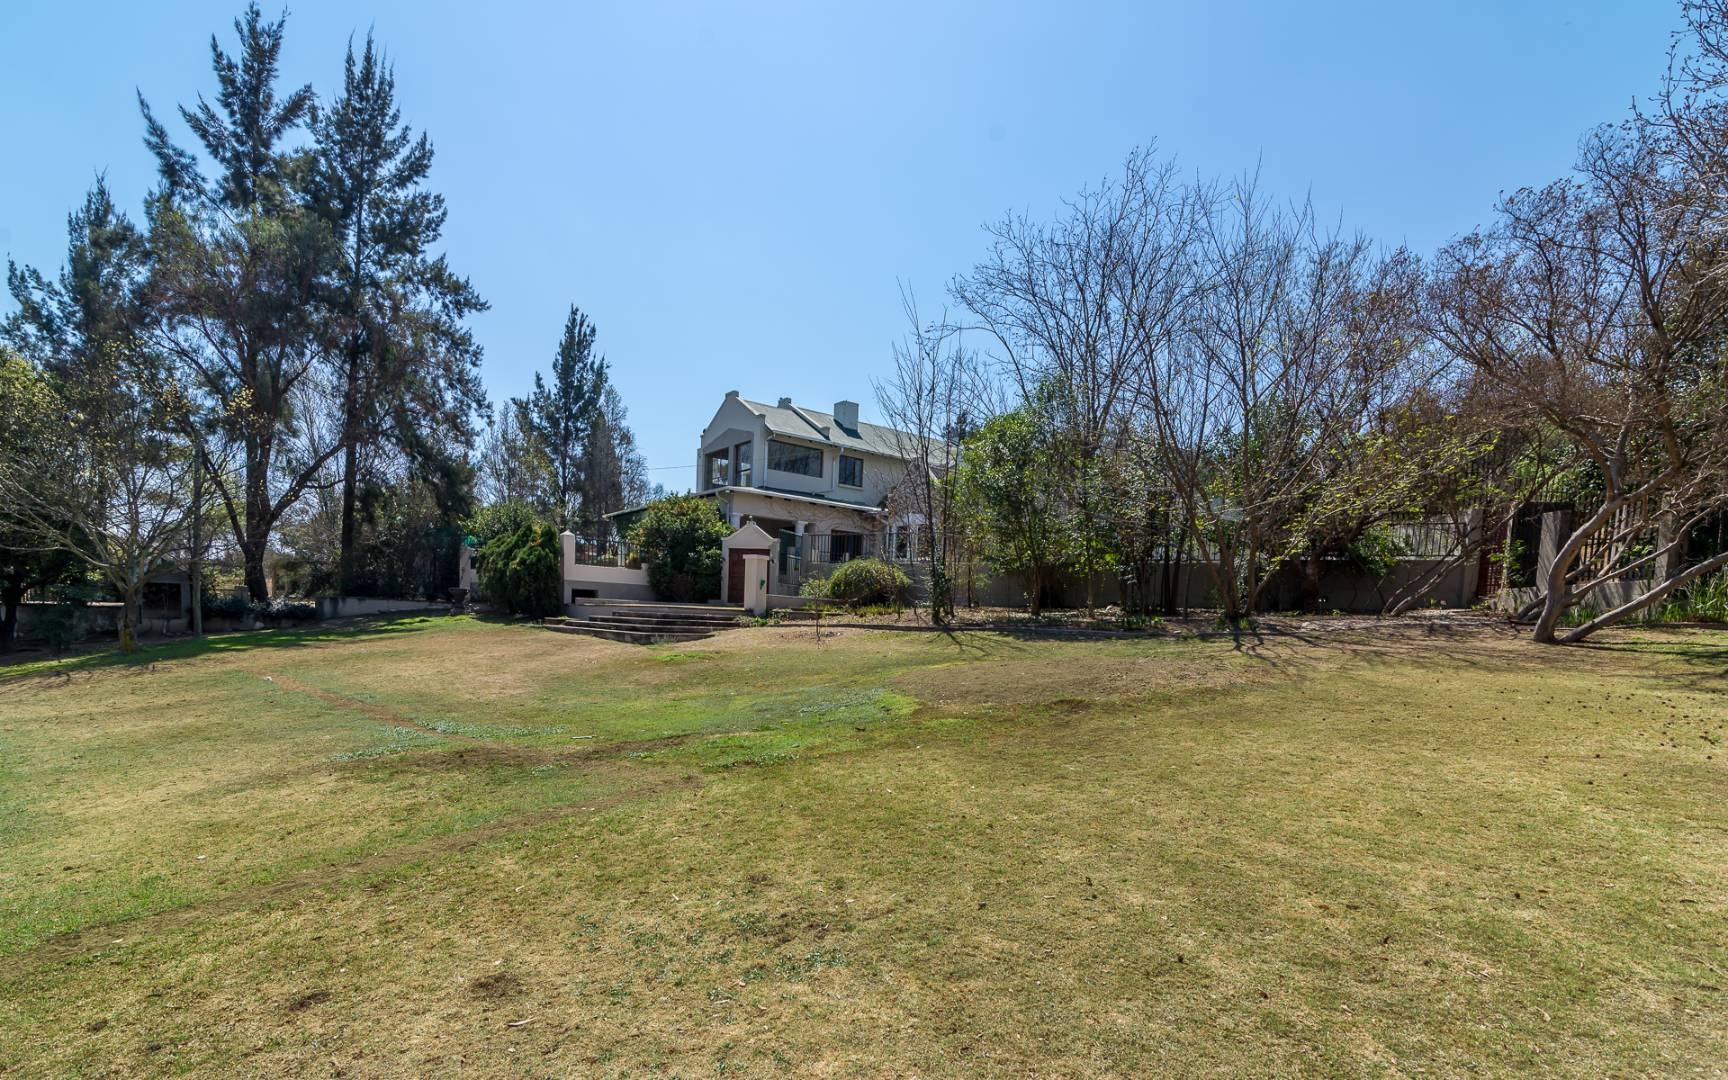 8 Bedroom House For Sale in Chartwell